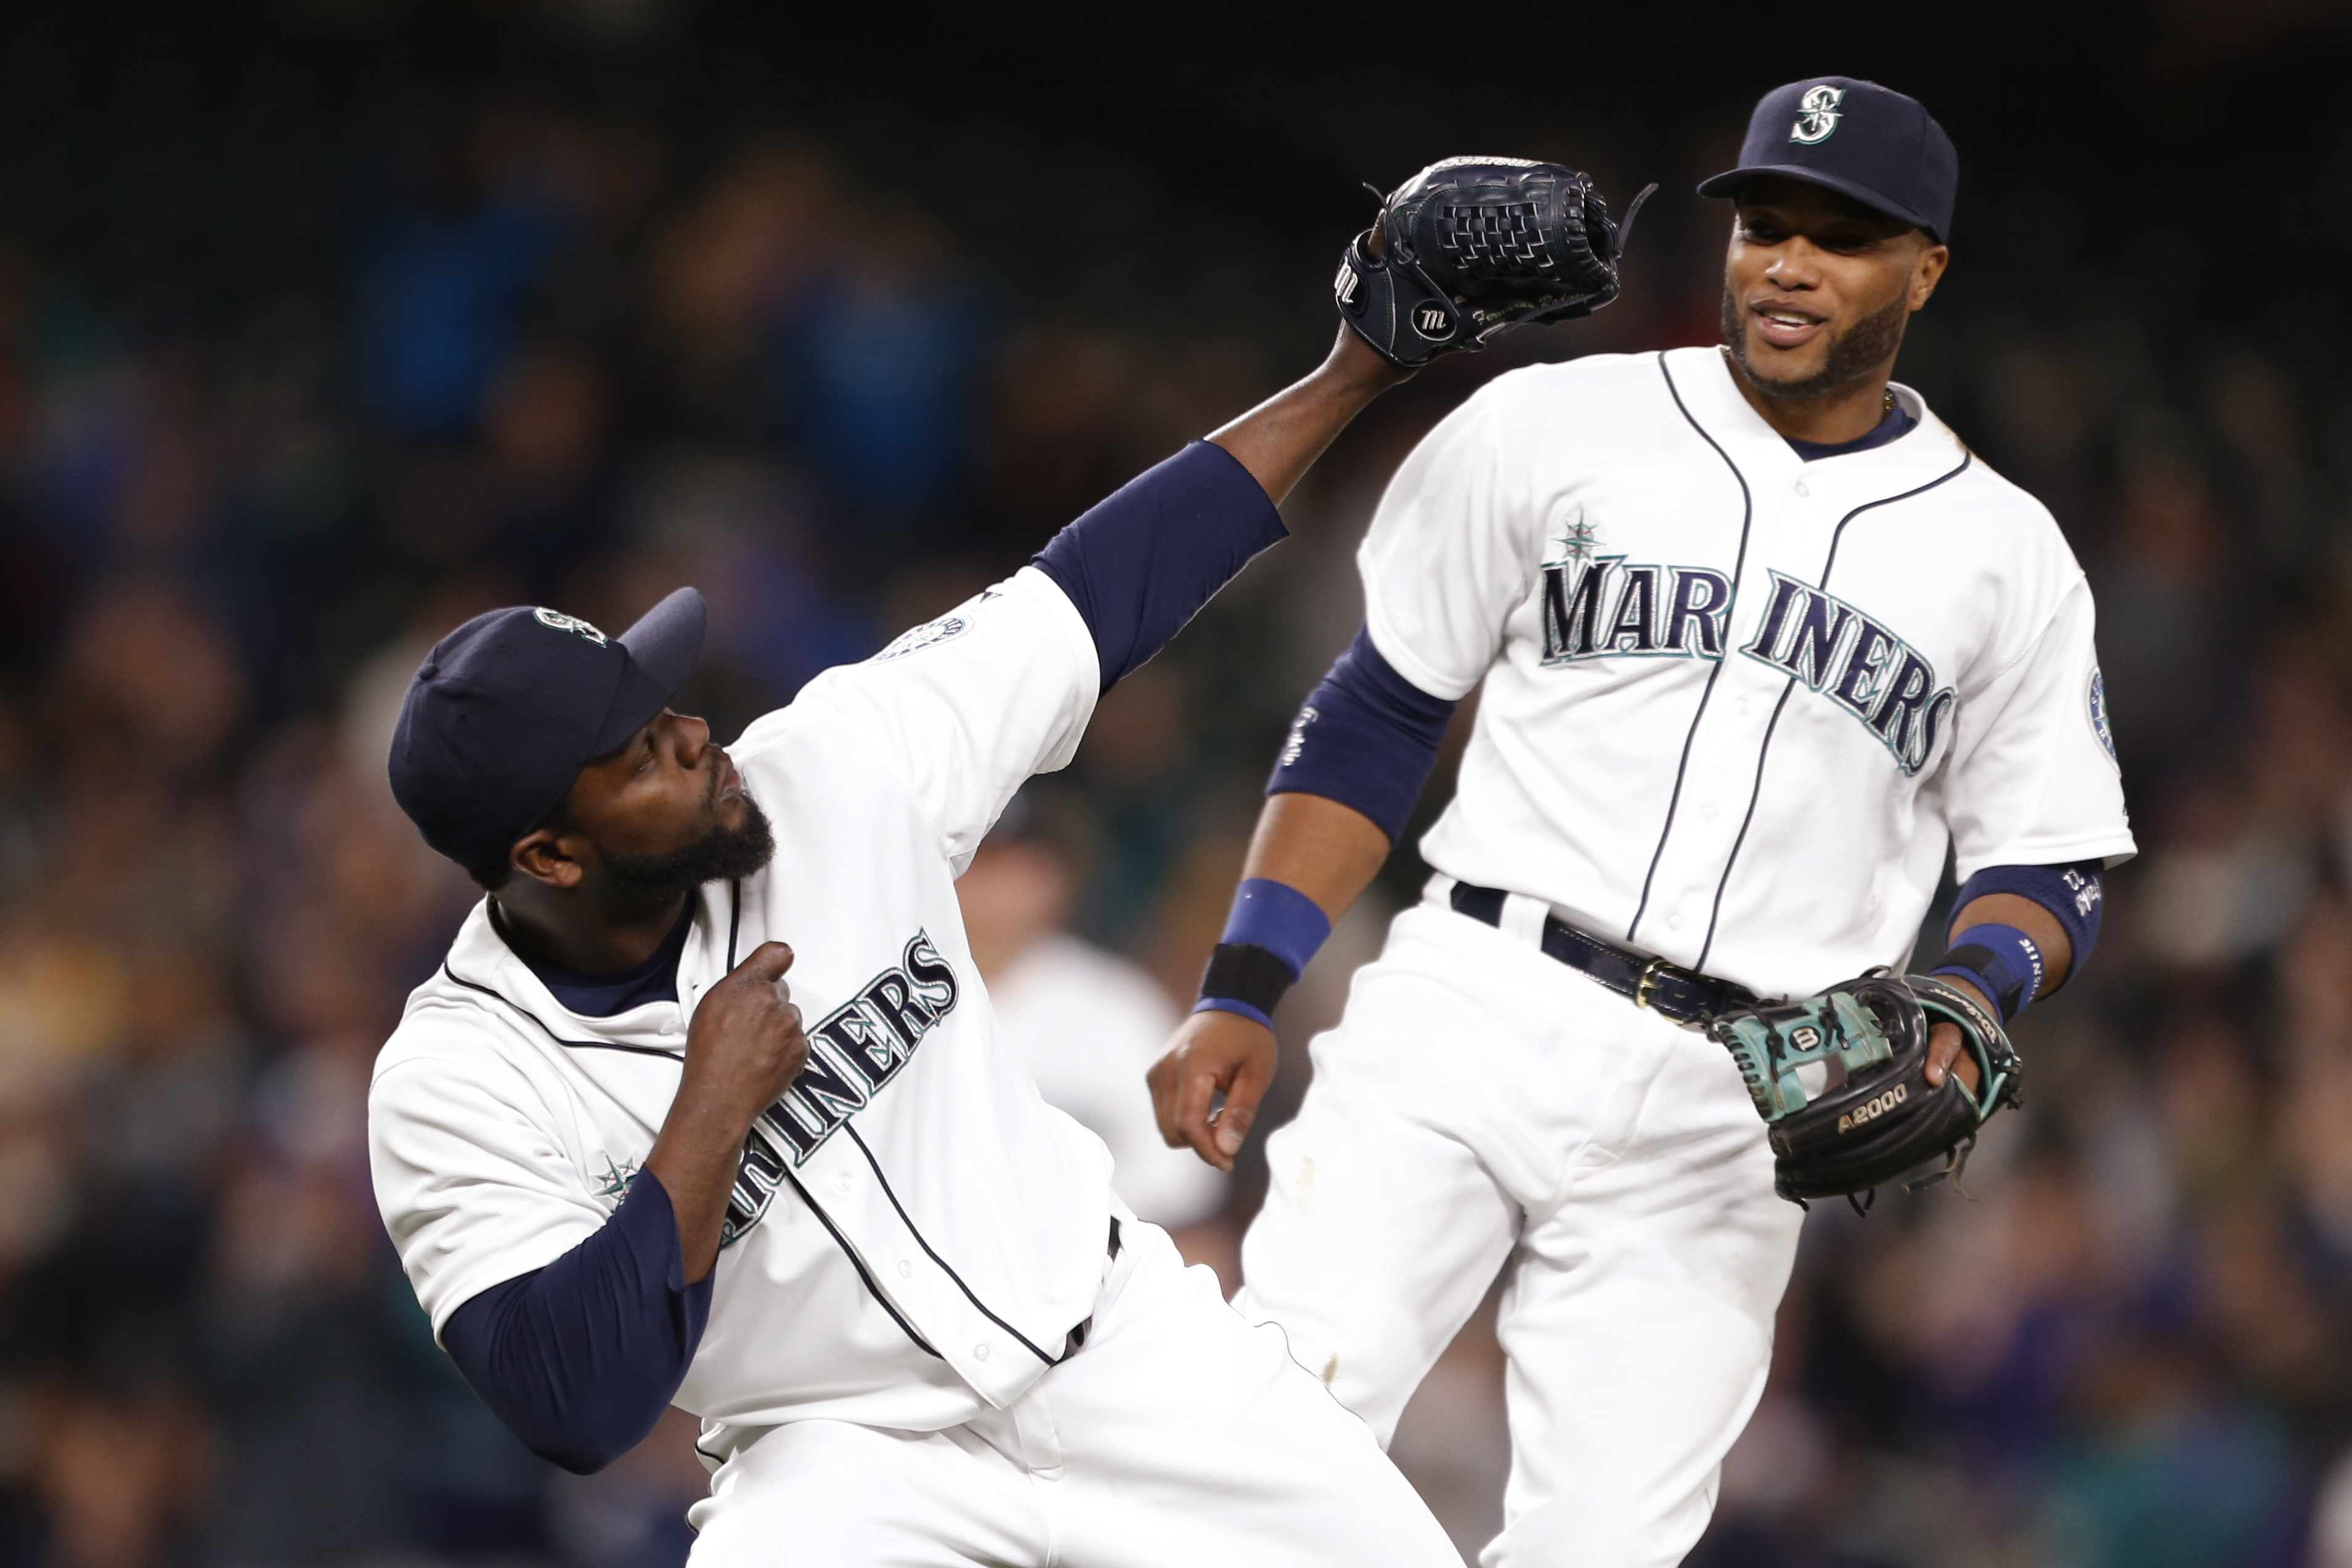 Seattle Mariners pitcher Fernando Rodney, left, and second baseman Robinson Cano celebrate the Mariners' 3-2 win over the Houston Astros in a baseball game Wednesday, April 22, 2015, in Seattle. (AP Photo/Jennifer Buchanan)